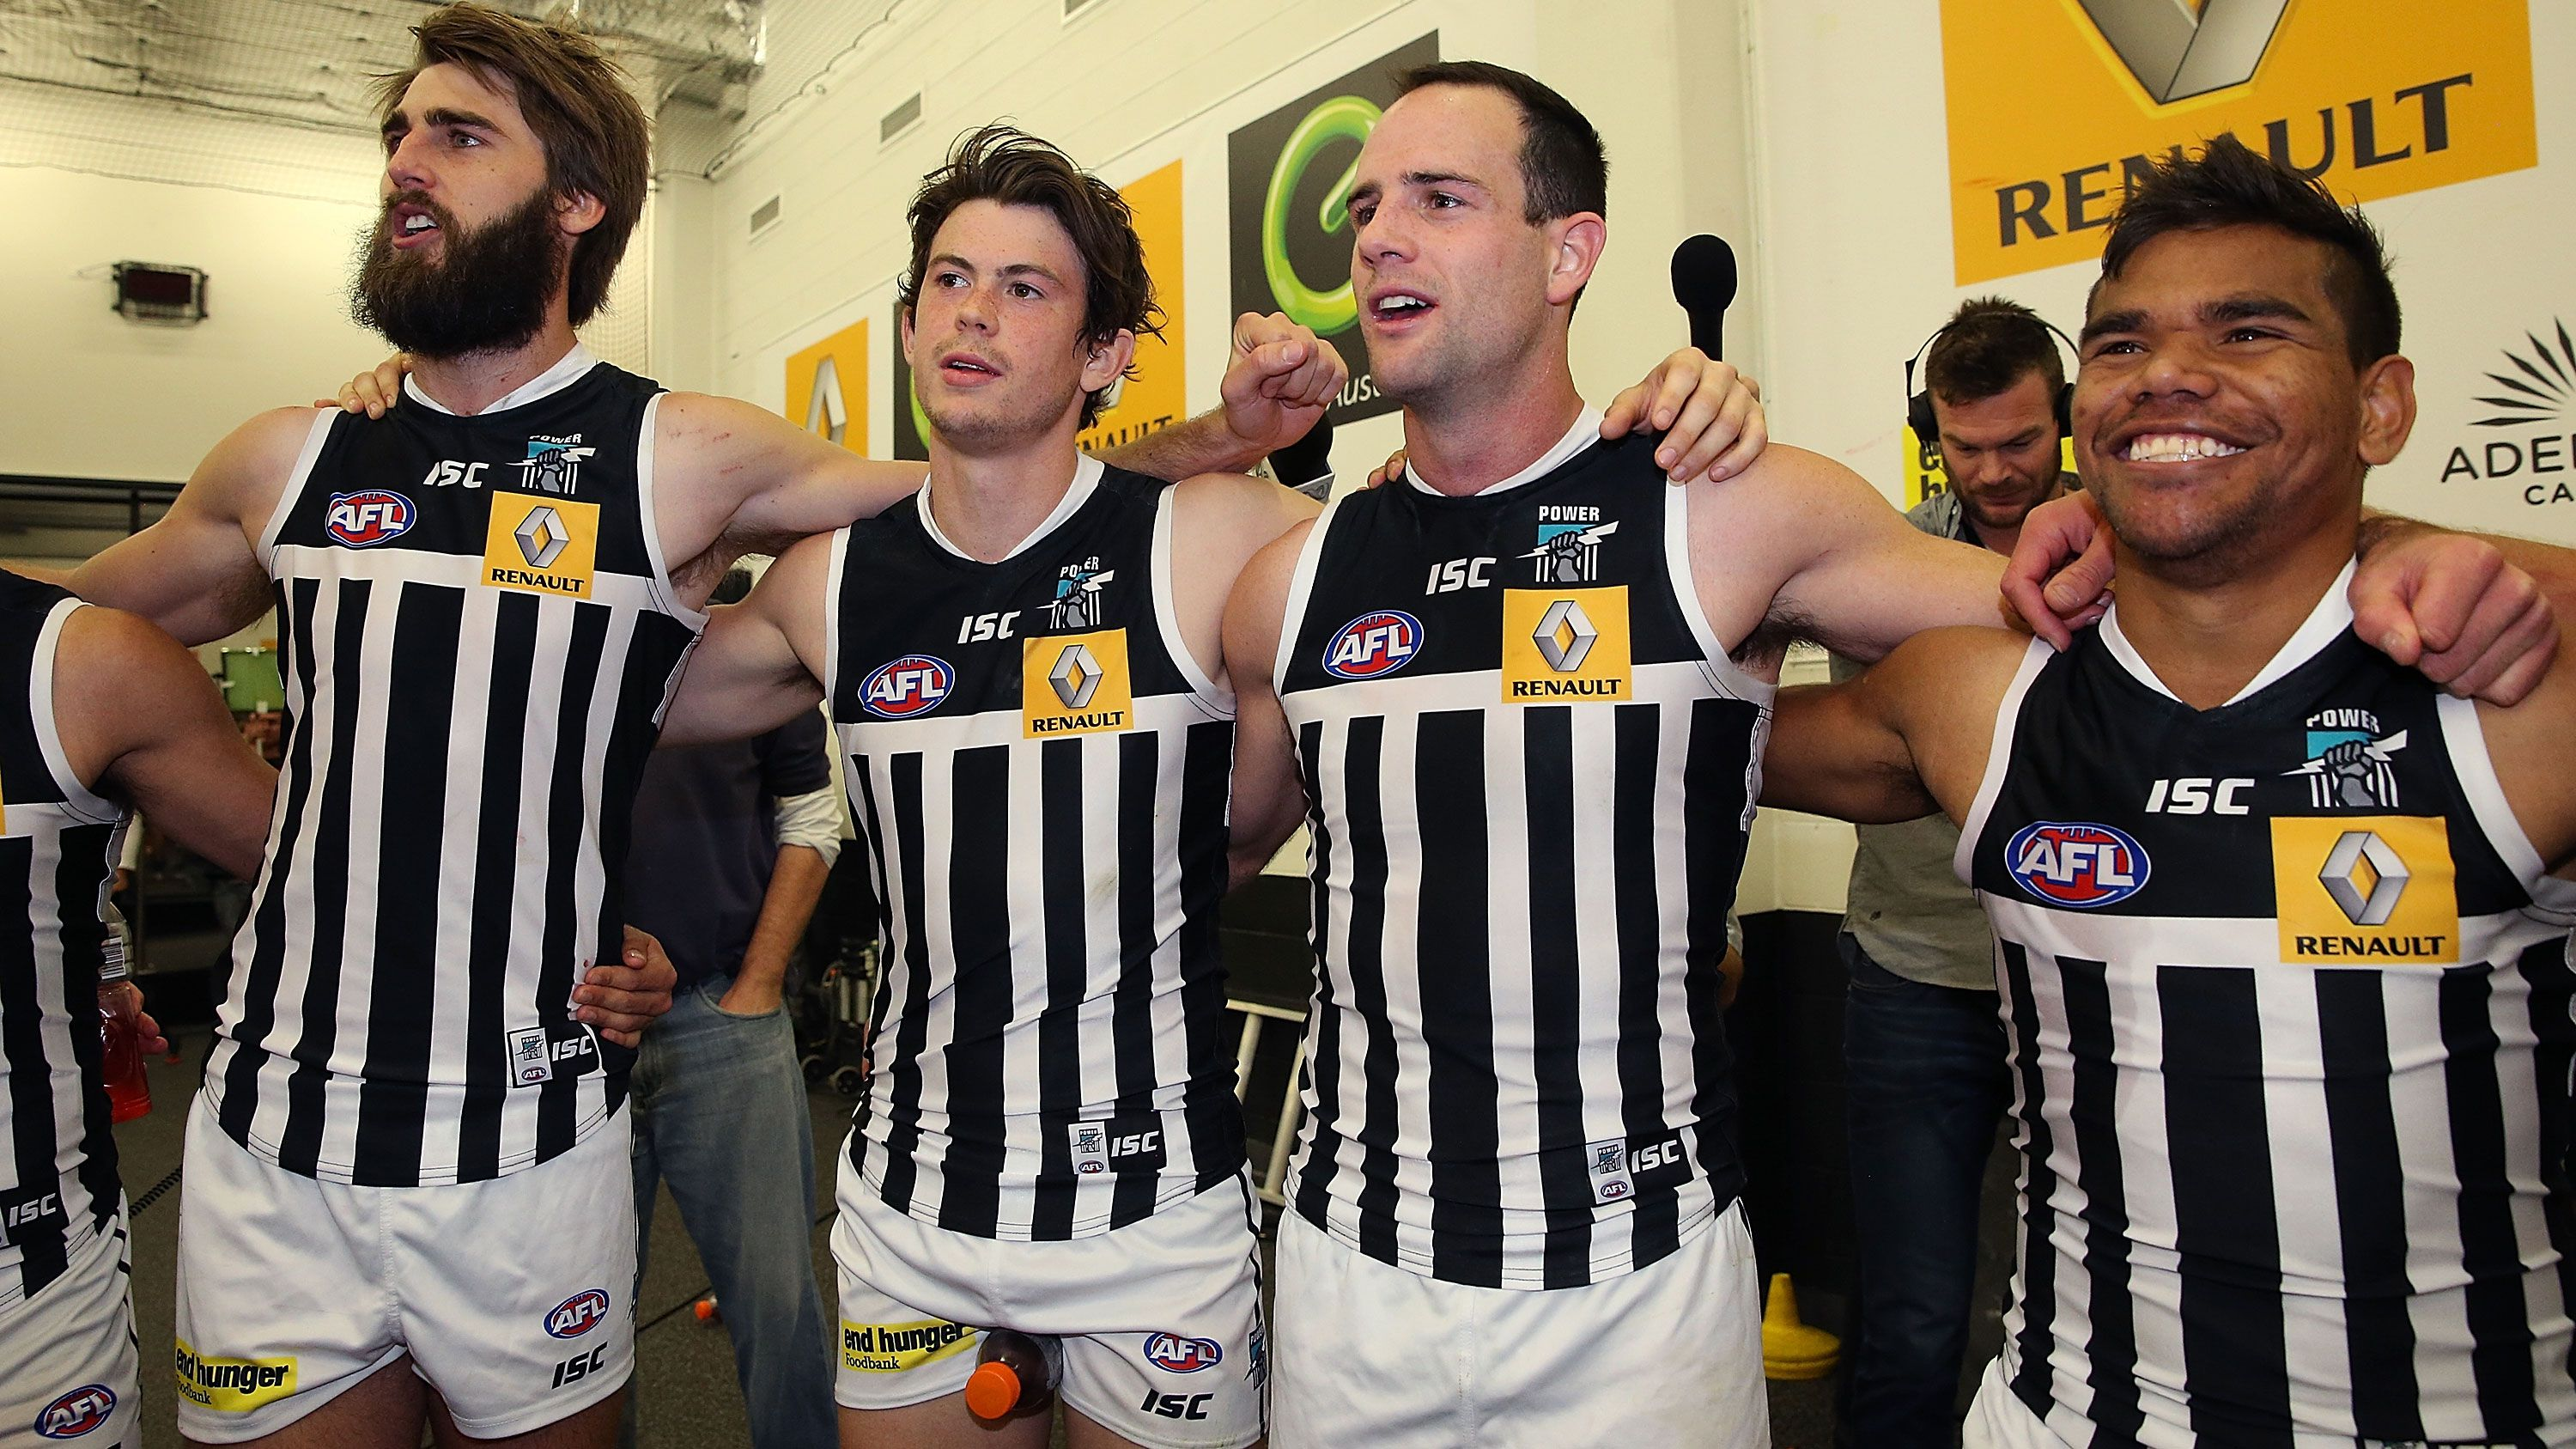 Port Adelaide to wear traditional prison bars outfit twice in 2020